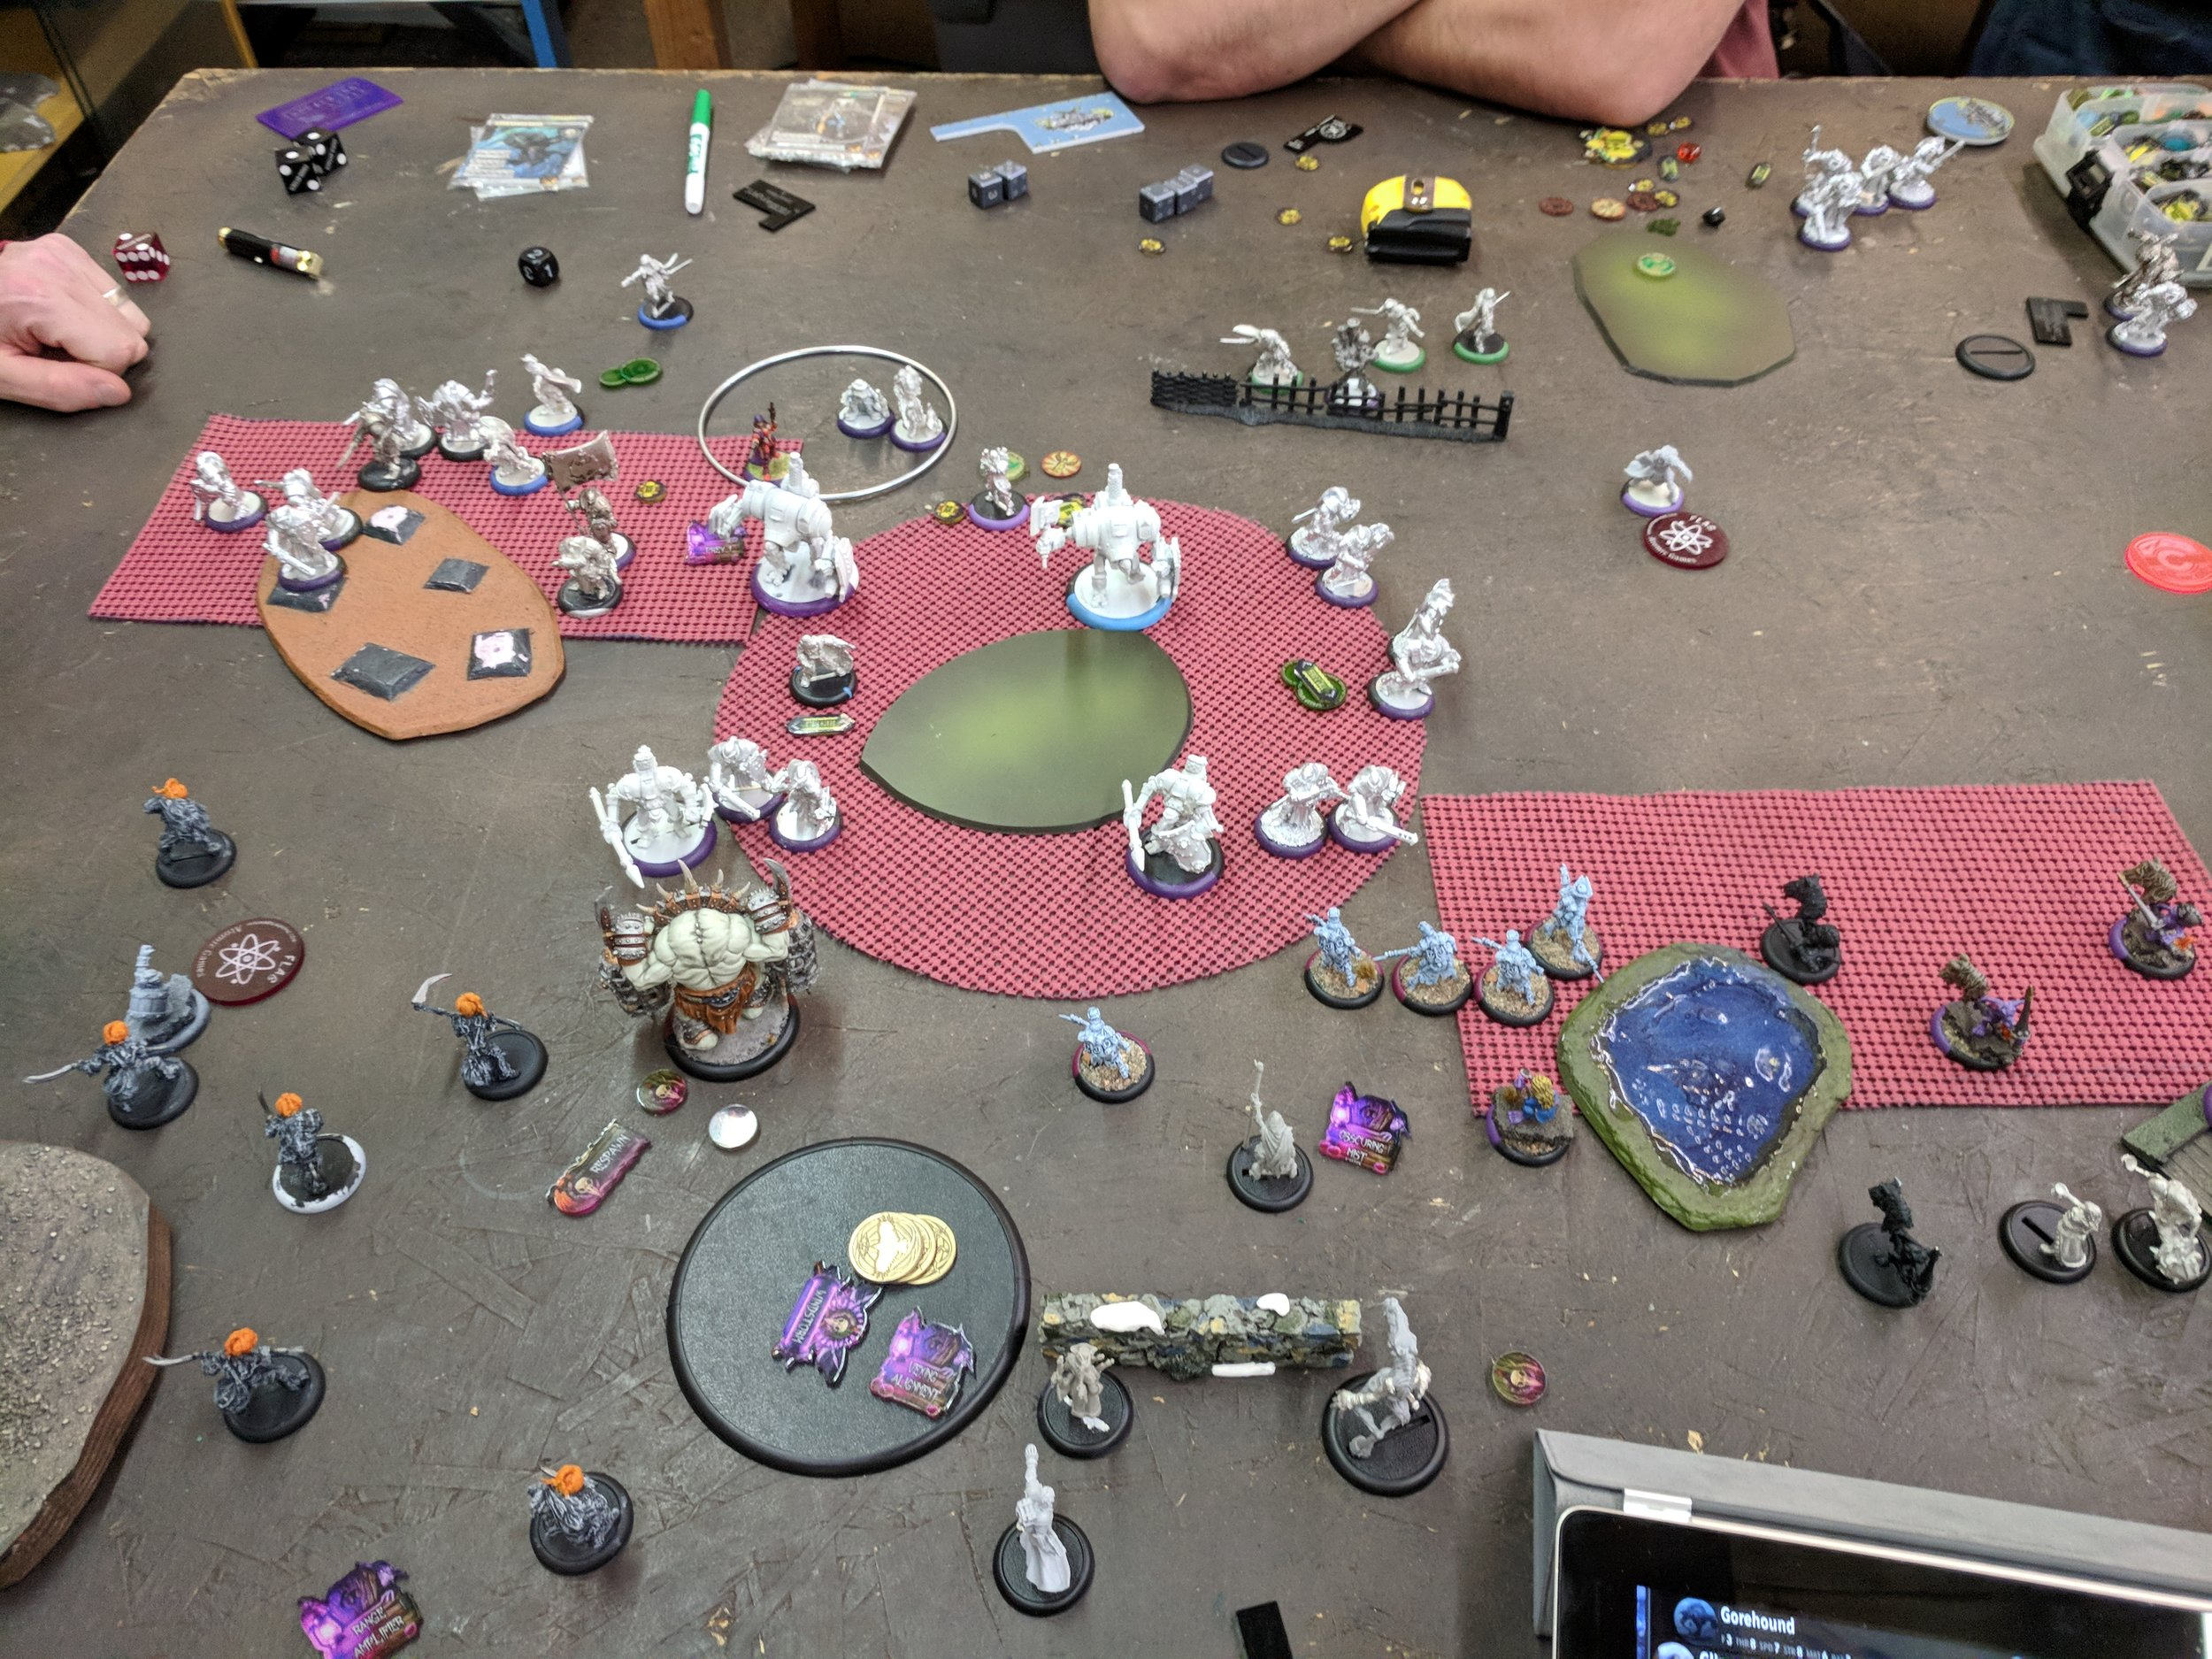 End of Mercs turn 2 3-1 Mercs